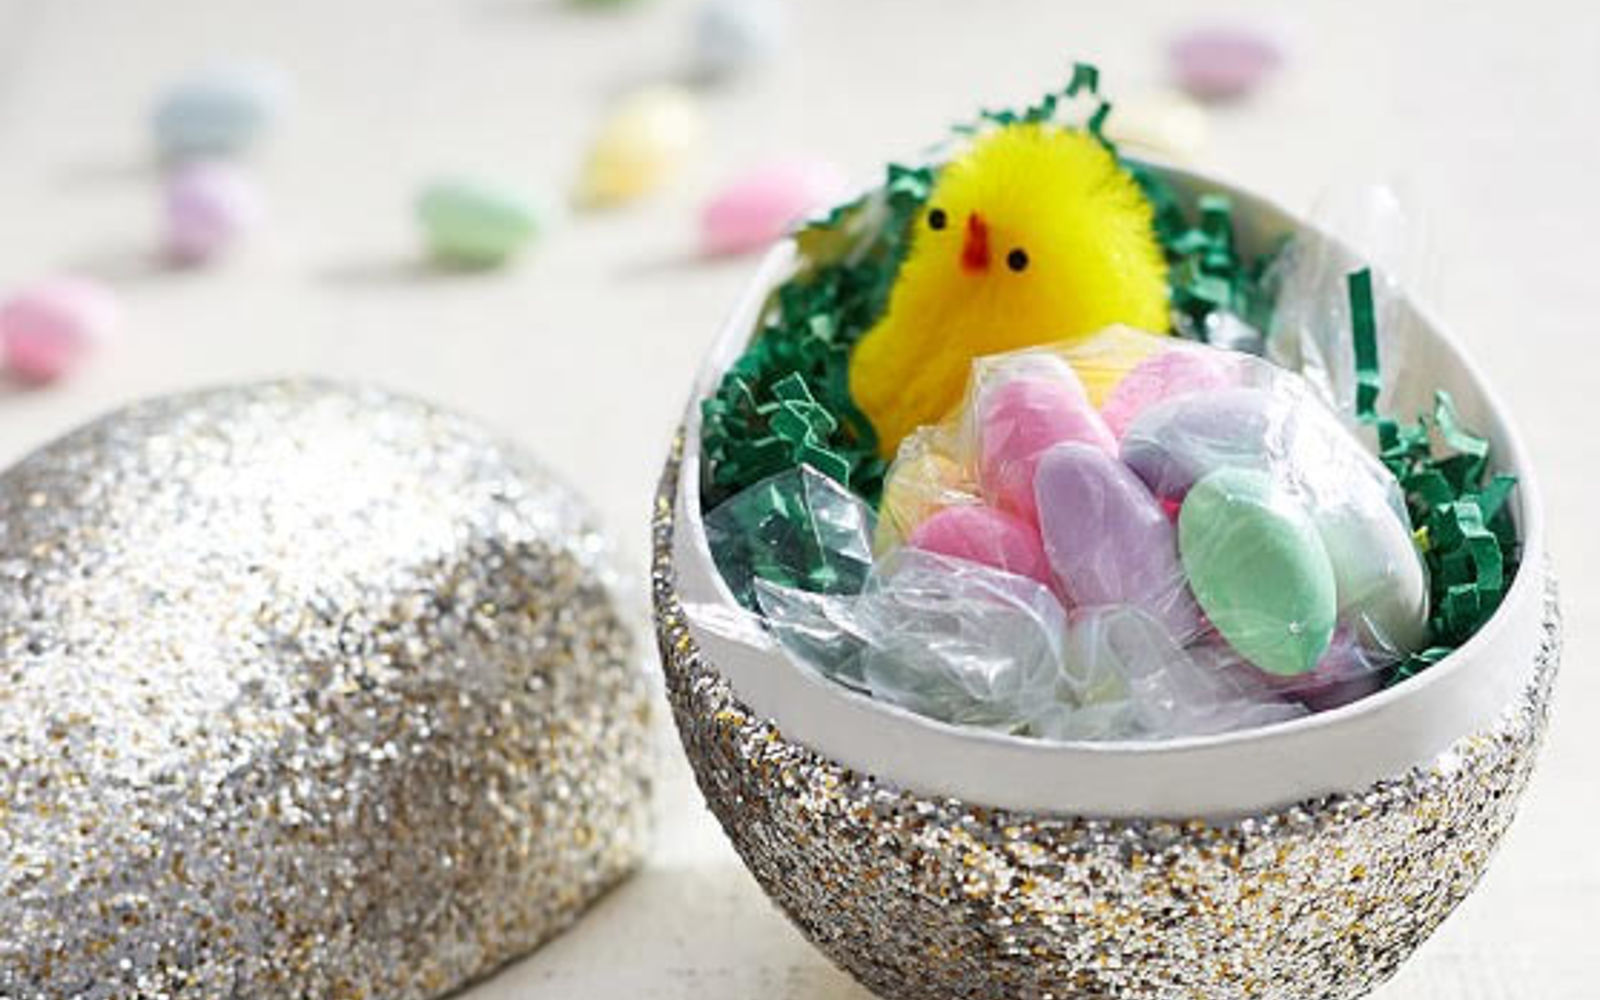 s 25 quick easter egg ideas that are just too stinkin cute, crafts, easter decorations, Sprinkle one with German glass glitter